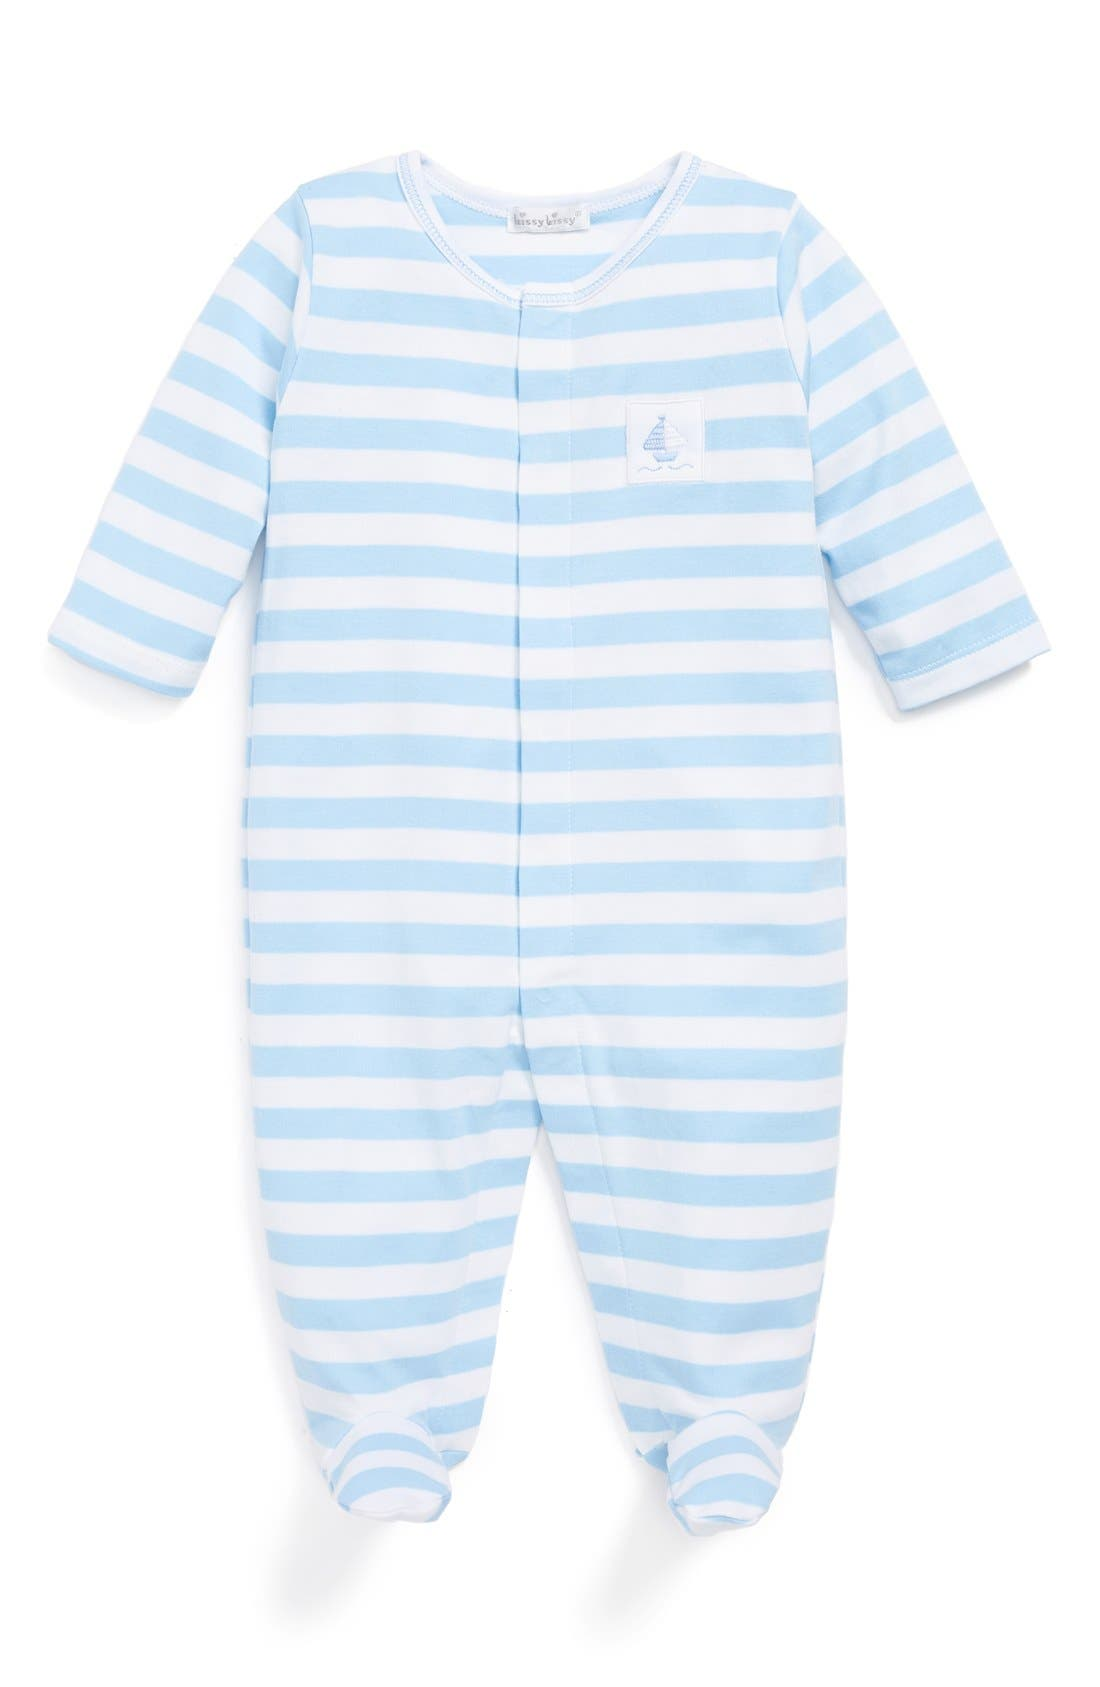 Alternate Image 1 Selected - Kissy Kissy 'Mainsail' Pima Cotton One-Piece (Baby Boys)